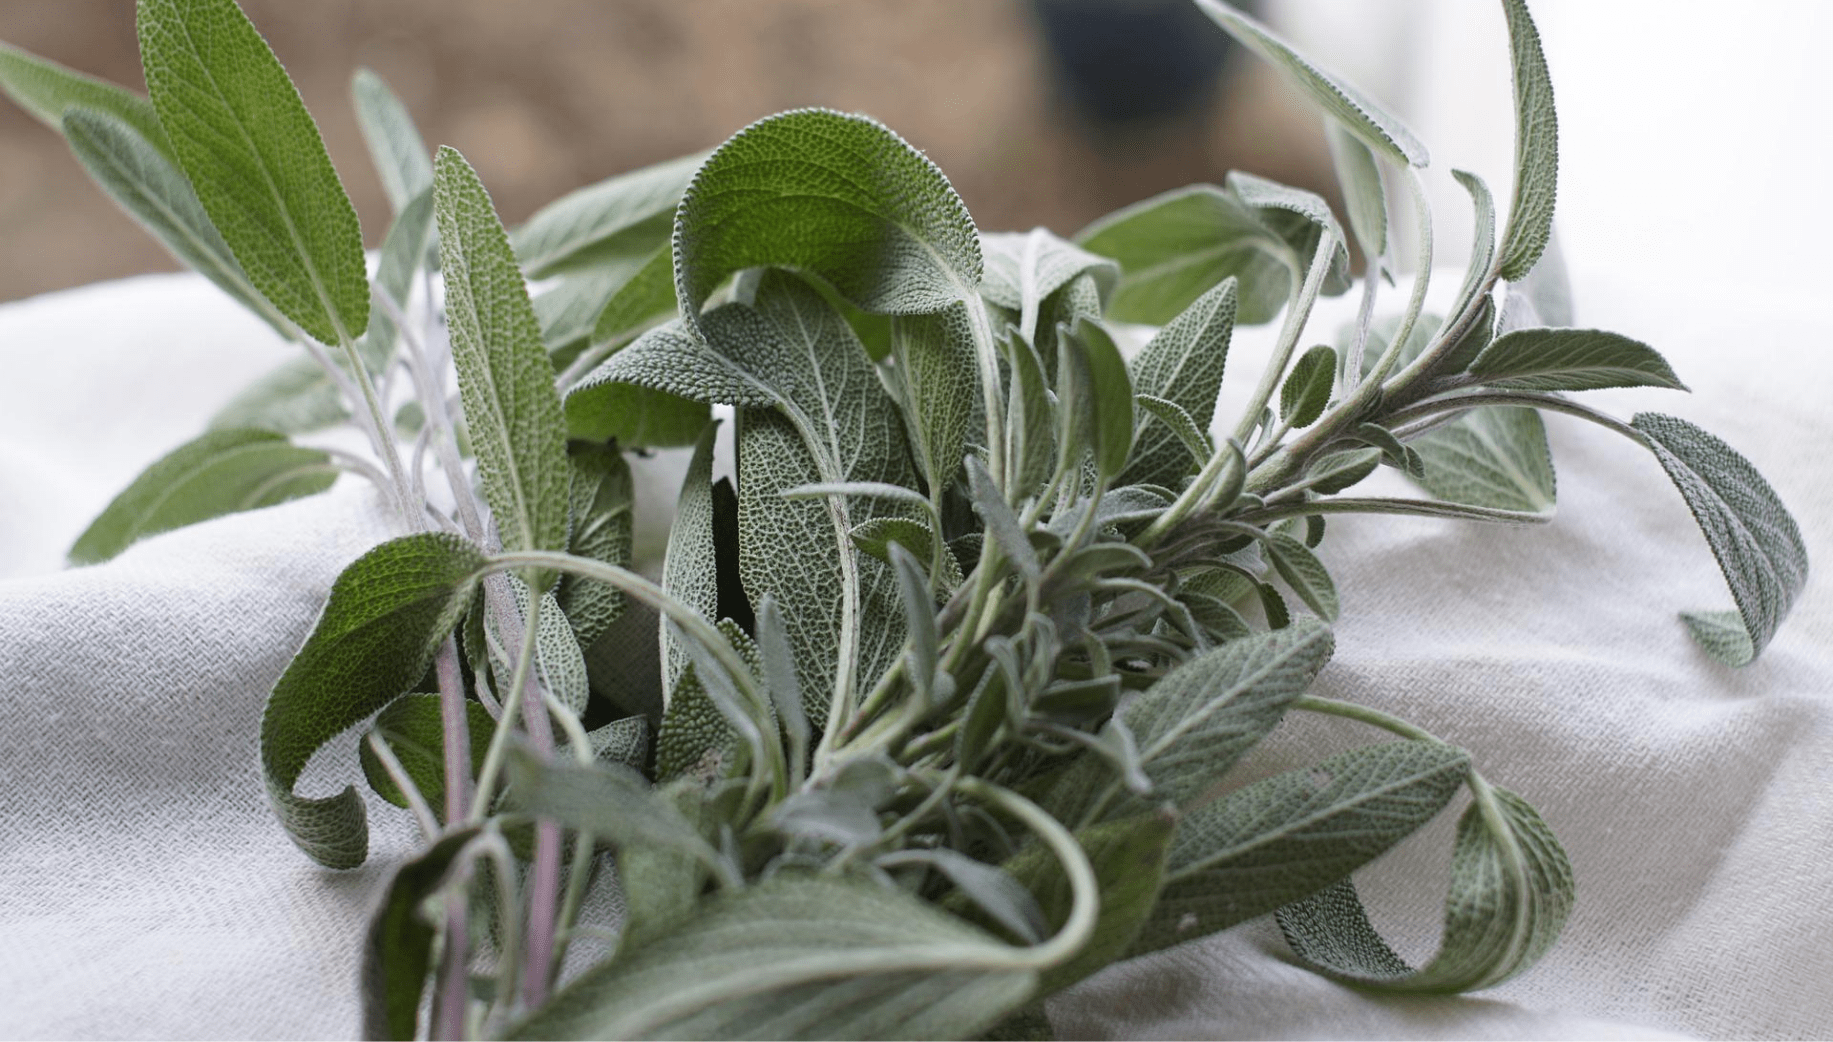 Sage plants commonly found in Meghalaya